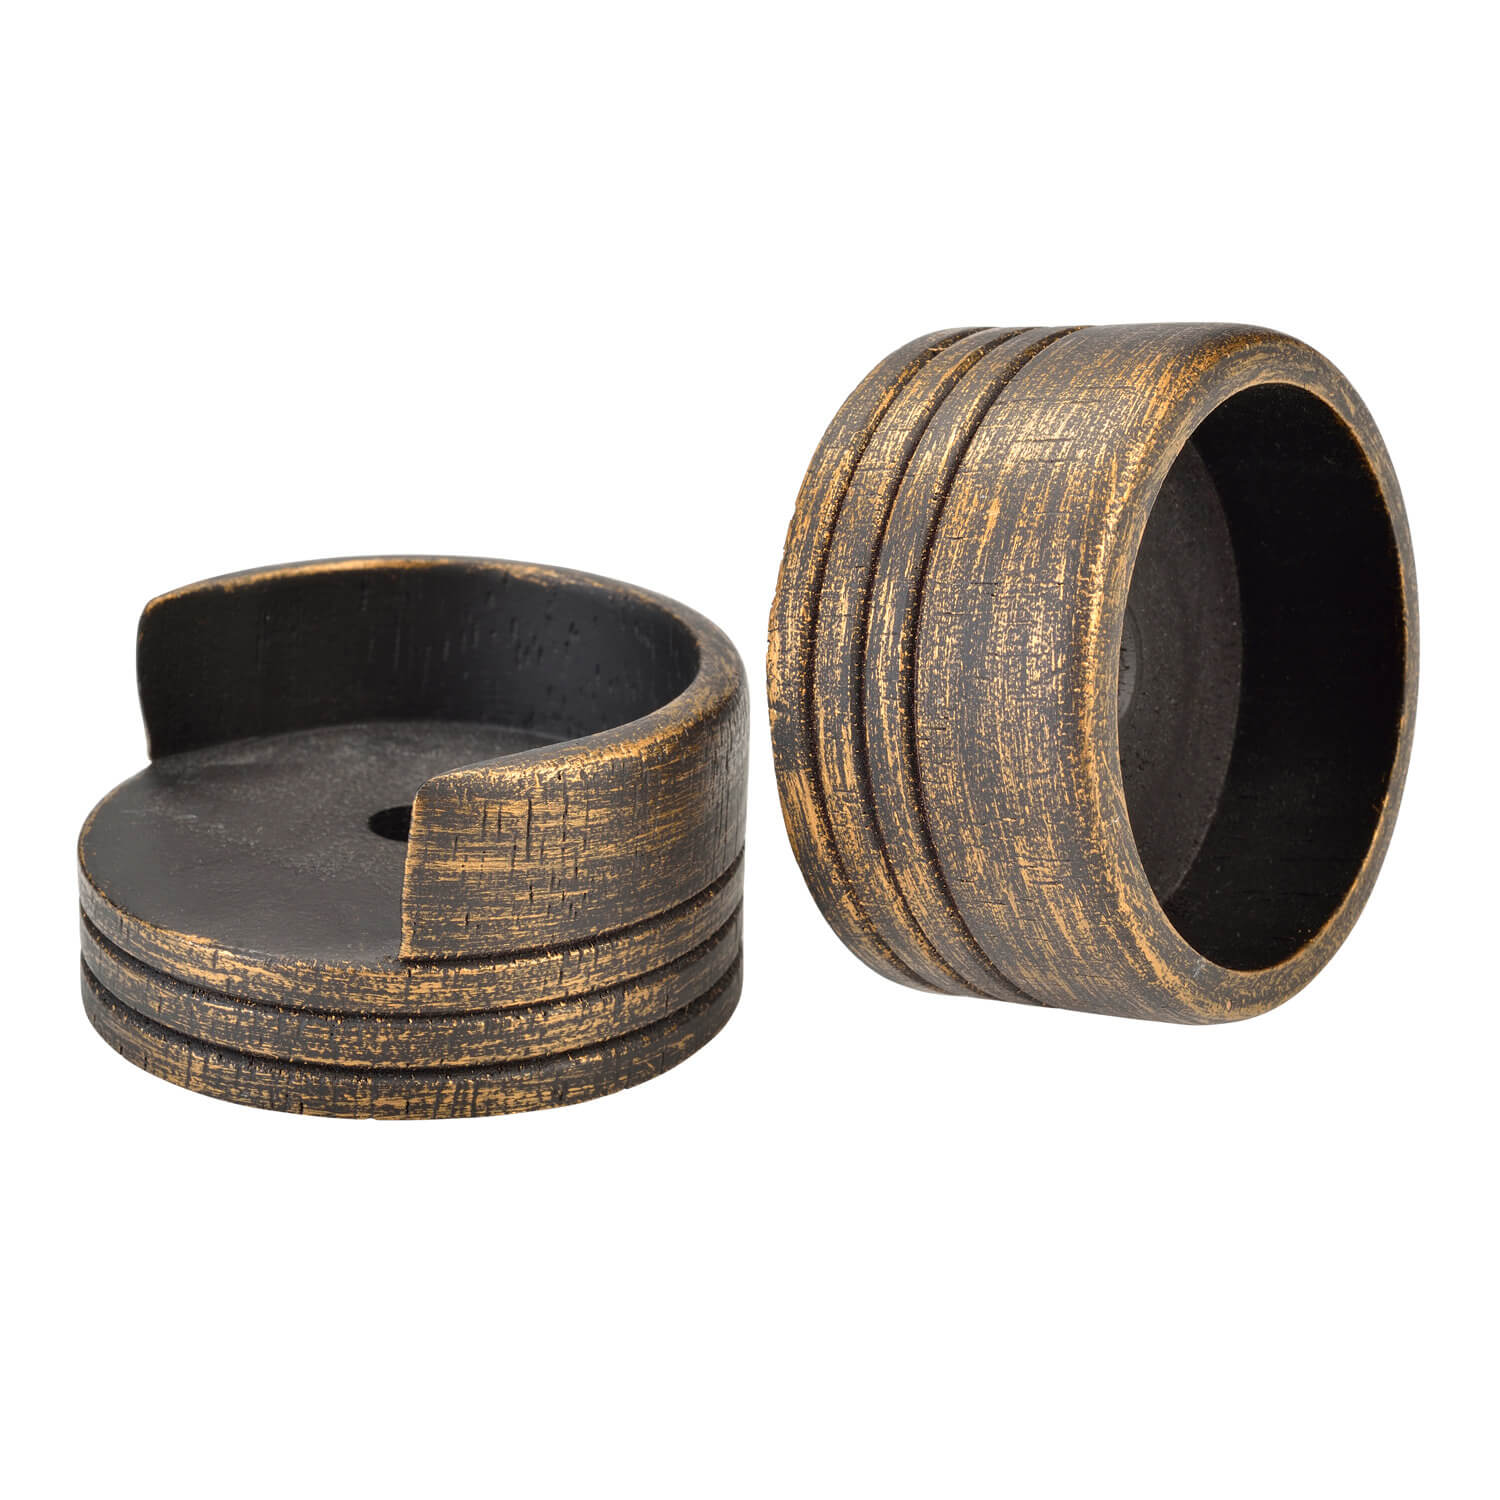 End Caps (Sold As Pair)